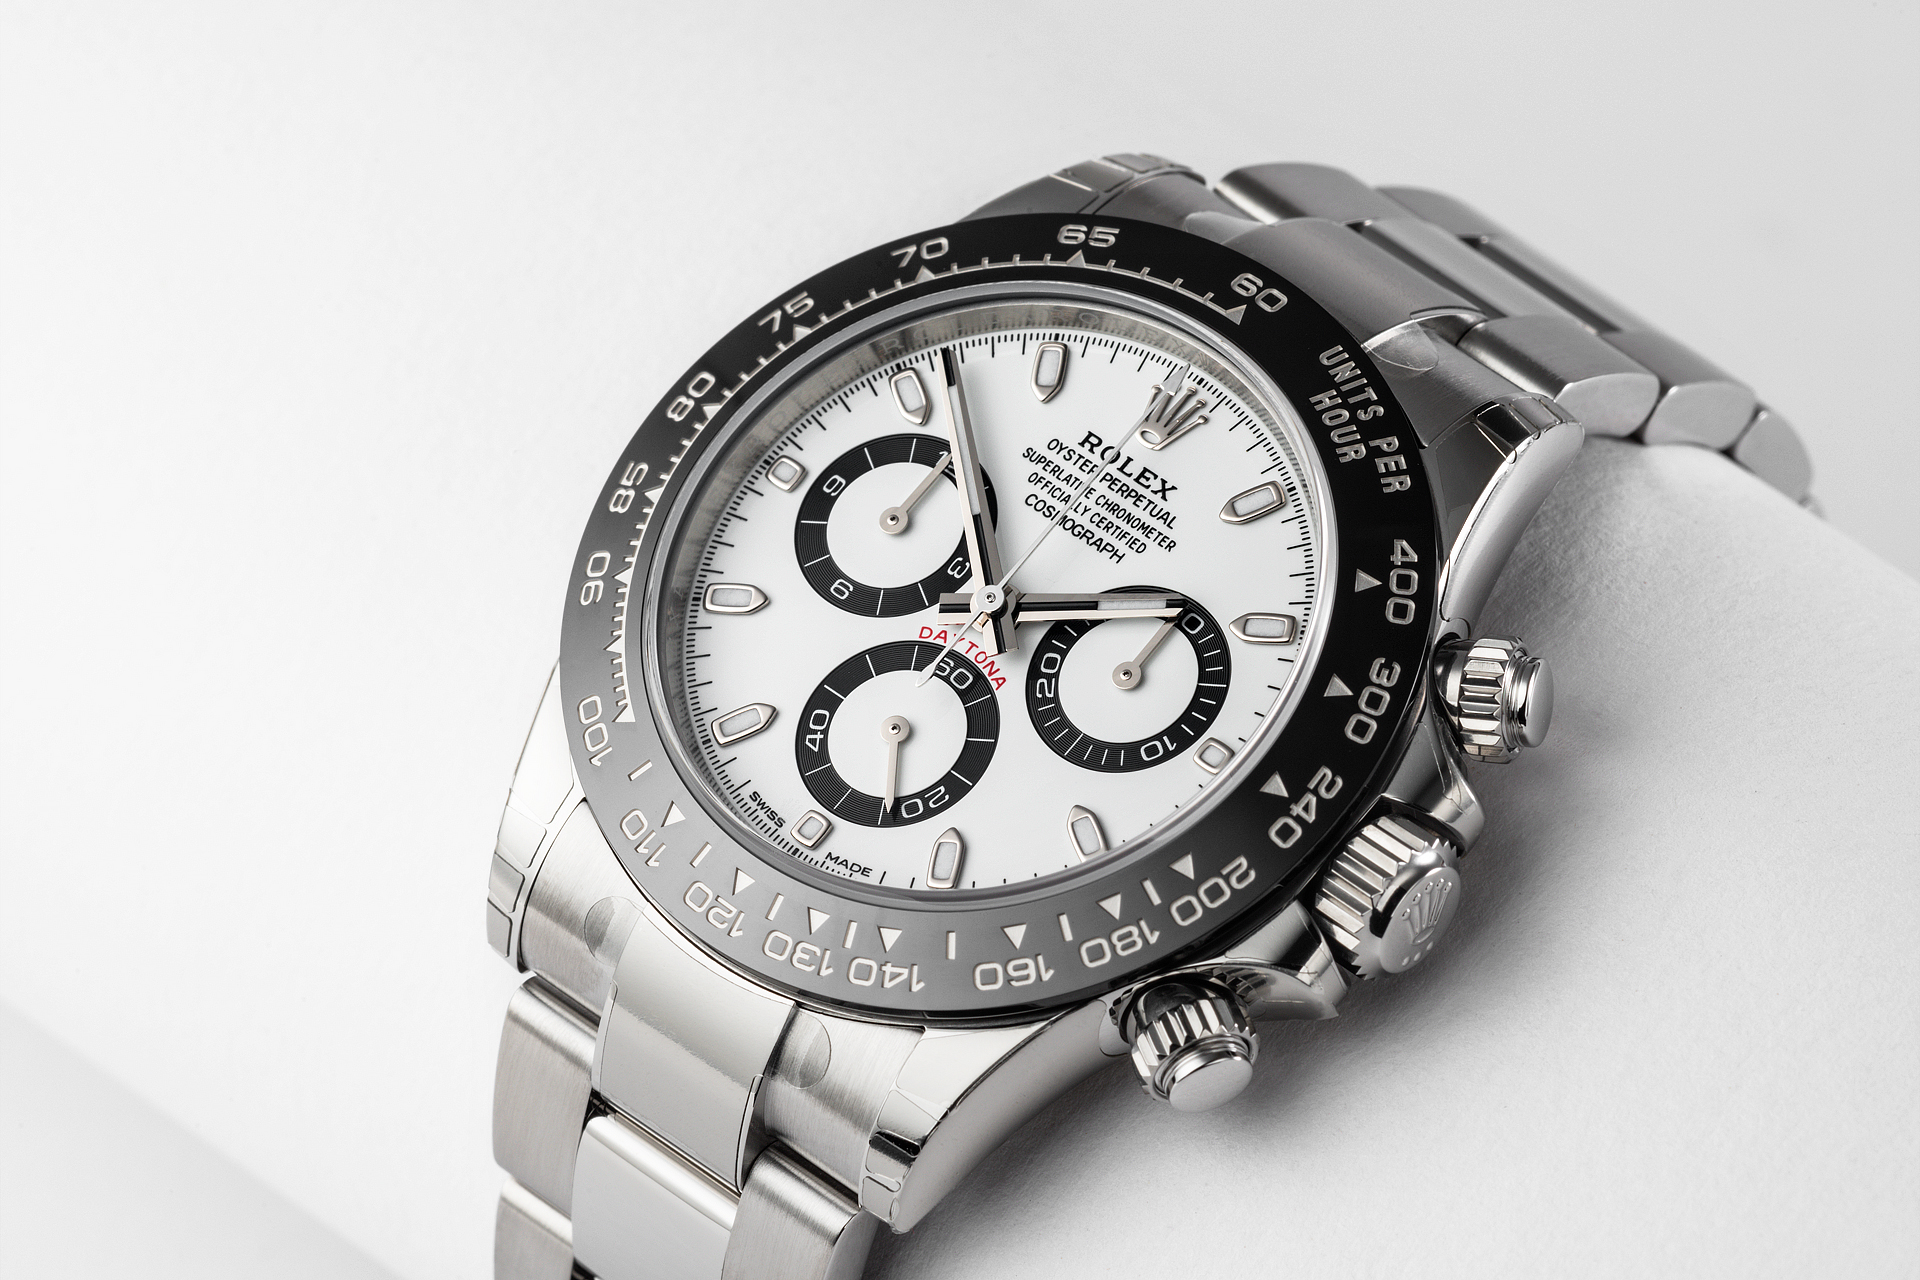 rolex cosmograph daytona watches ref 116500ln fully. Black Bedroom Furniture Sets. Home Design Ideas